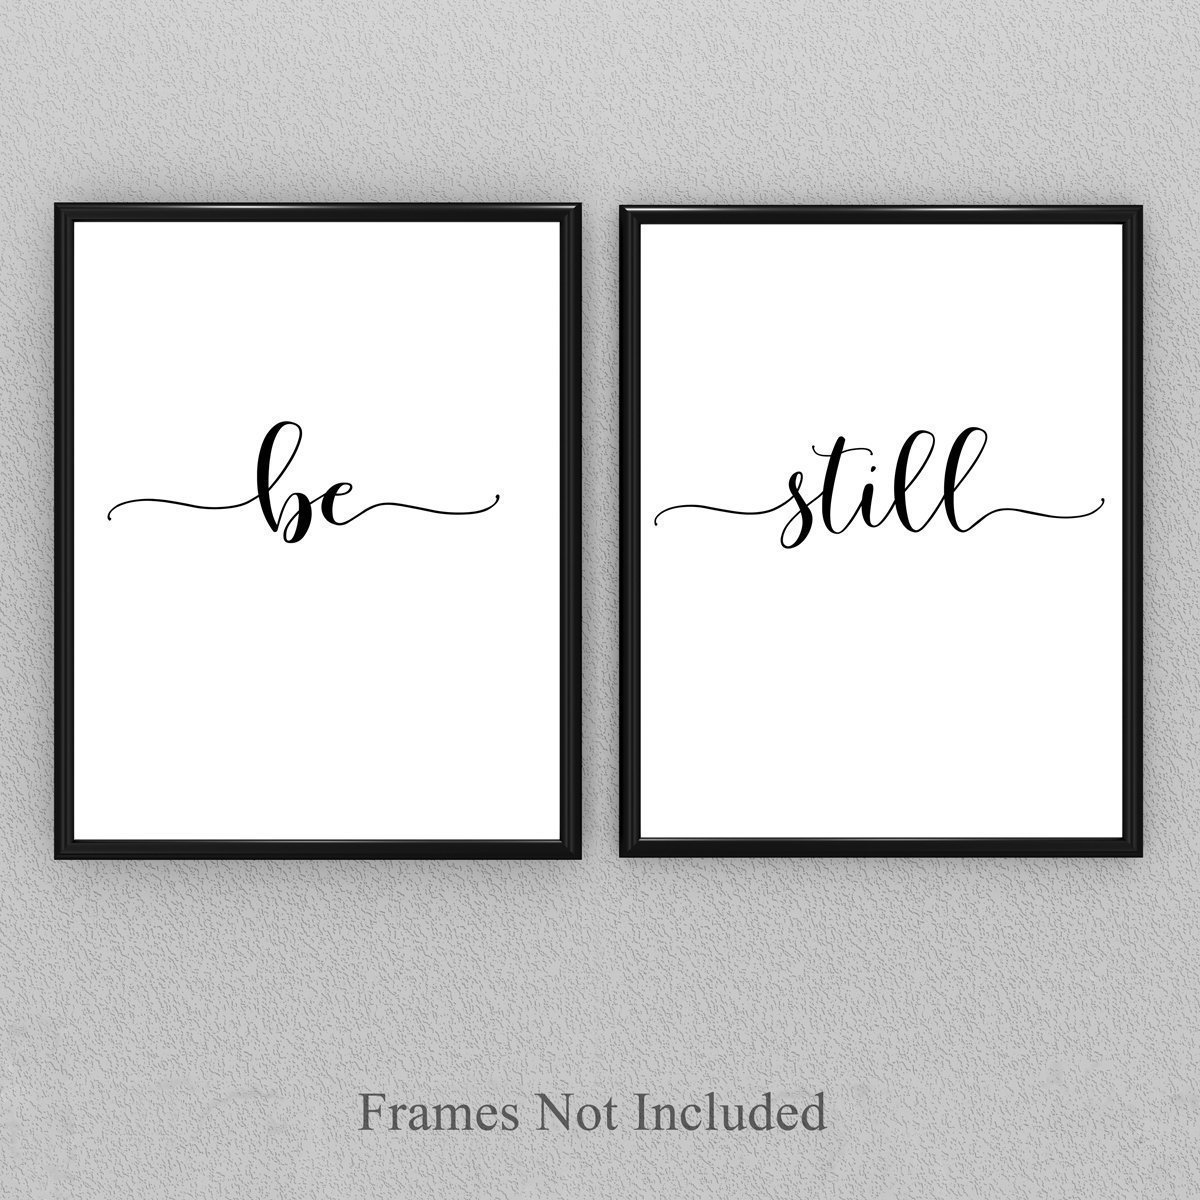 Be Still - Set of Two 11x14 Unframed Typography Art Prints - Great Gift for Home Decor